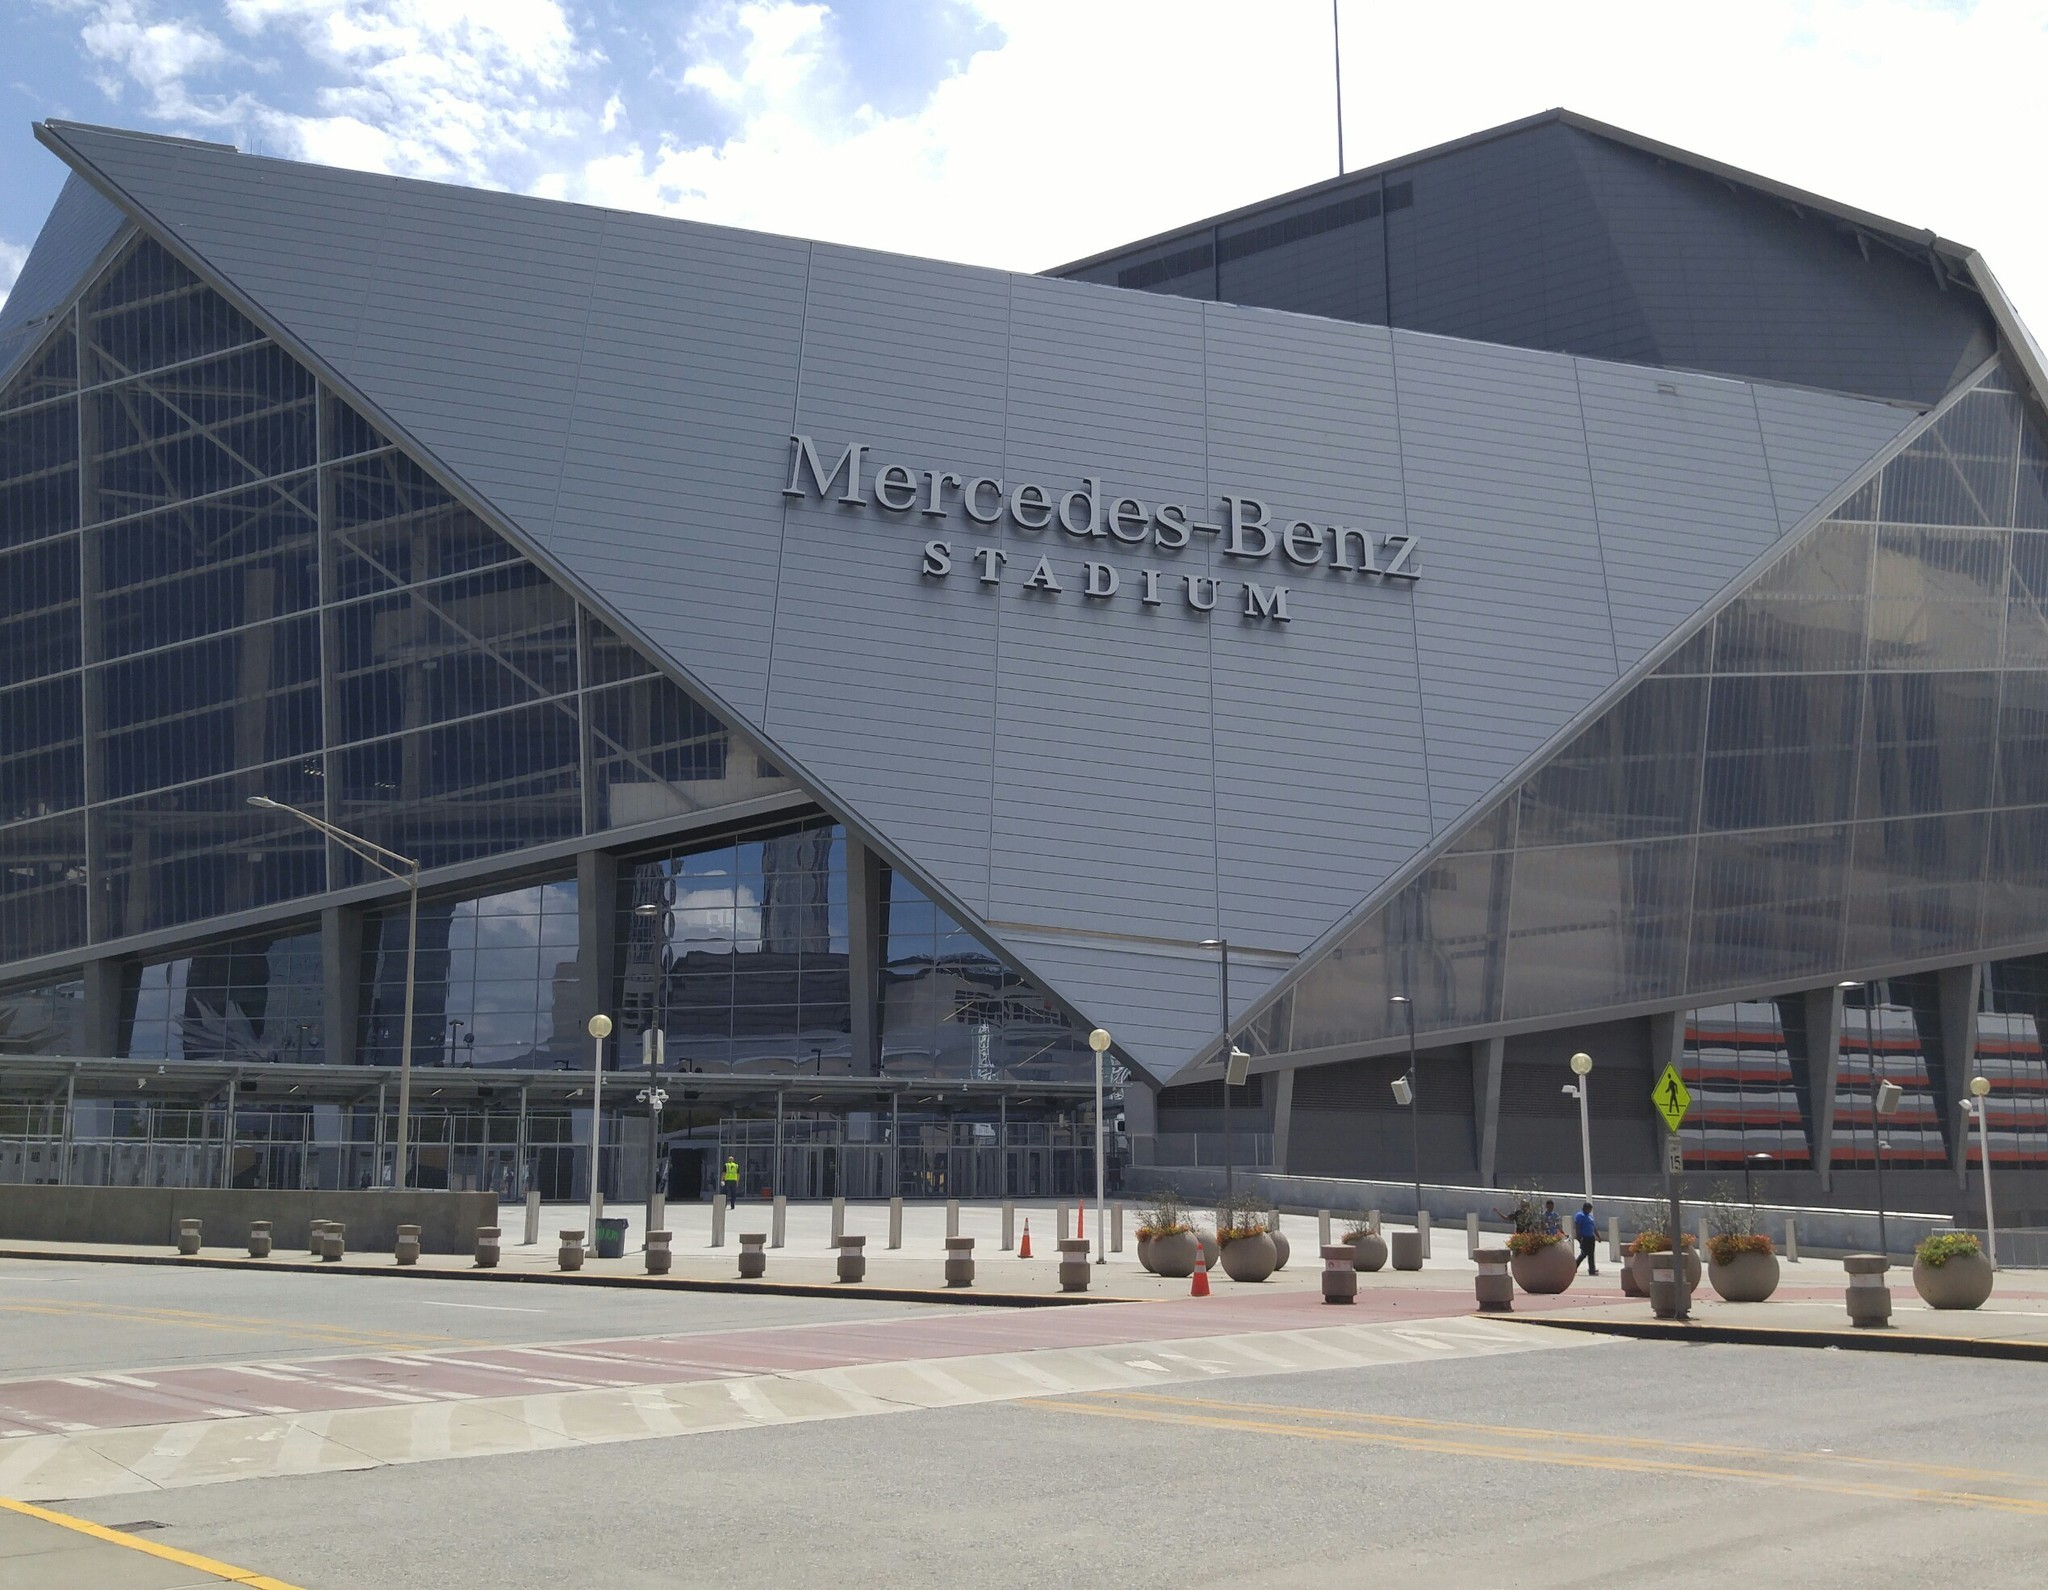 Good stadium food exists mercedes benz stadium in atlanta for Will call mercedes benz stadium